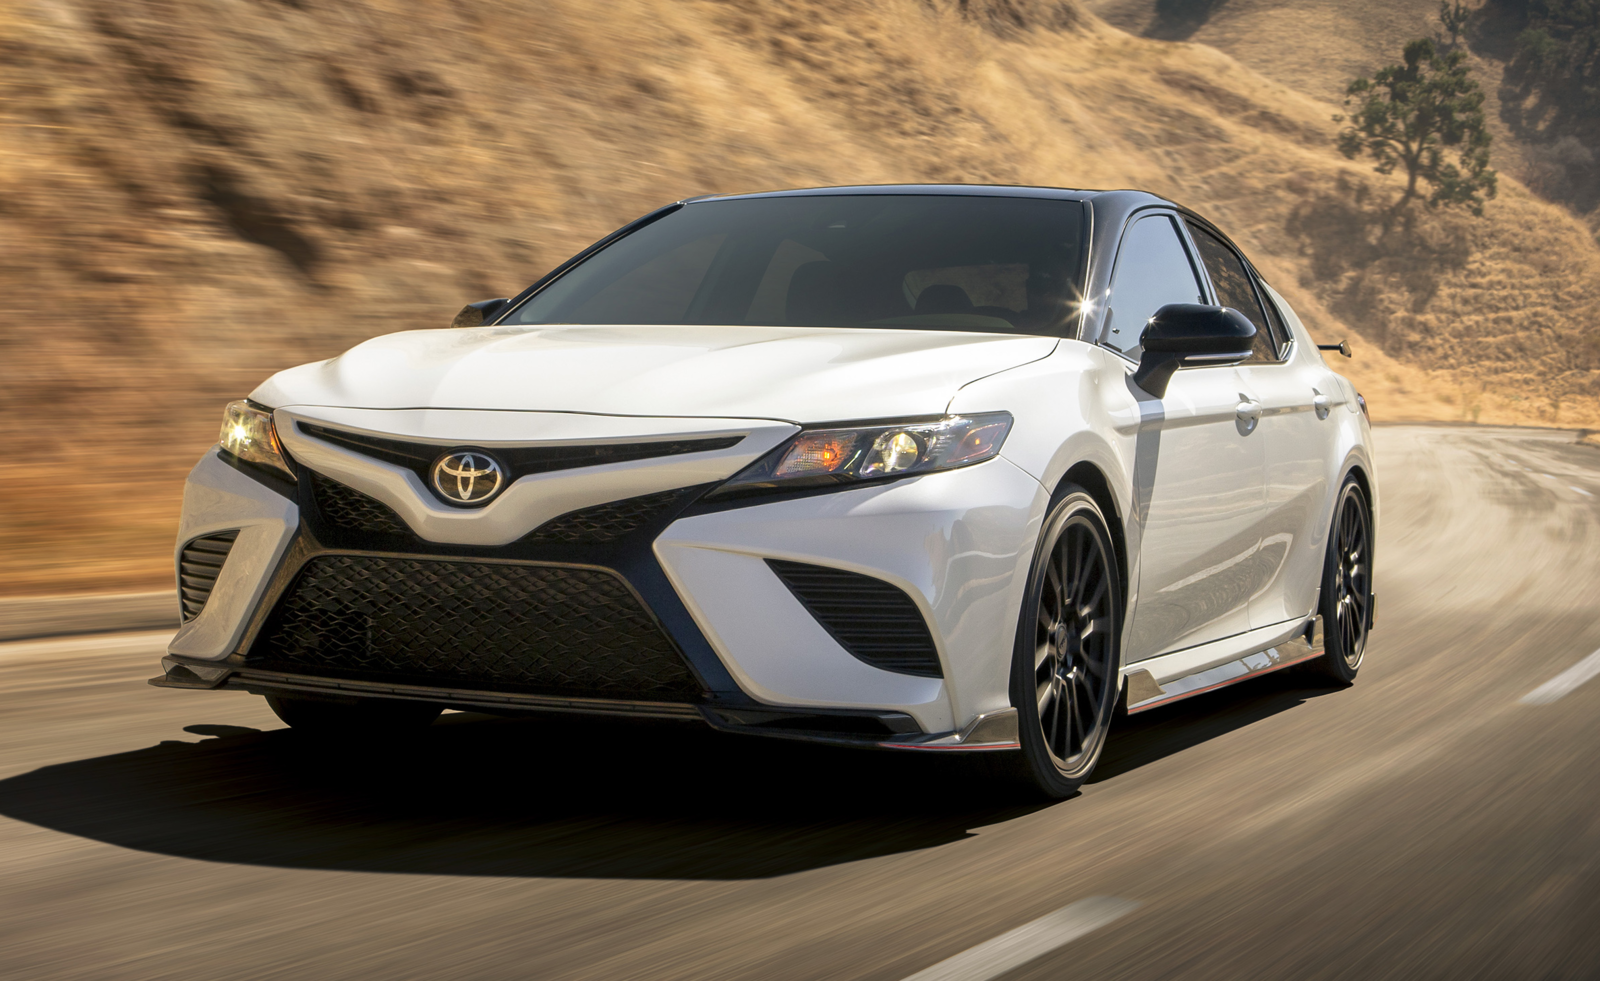 2020 Camry Xse Review.2020 Toyota Camry Overview Cargurus